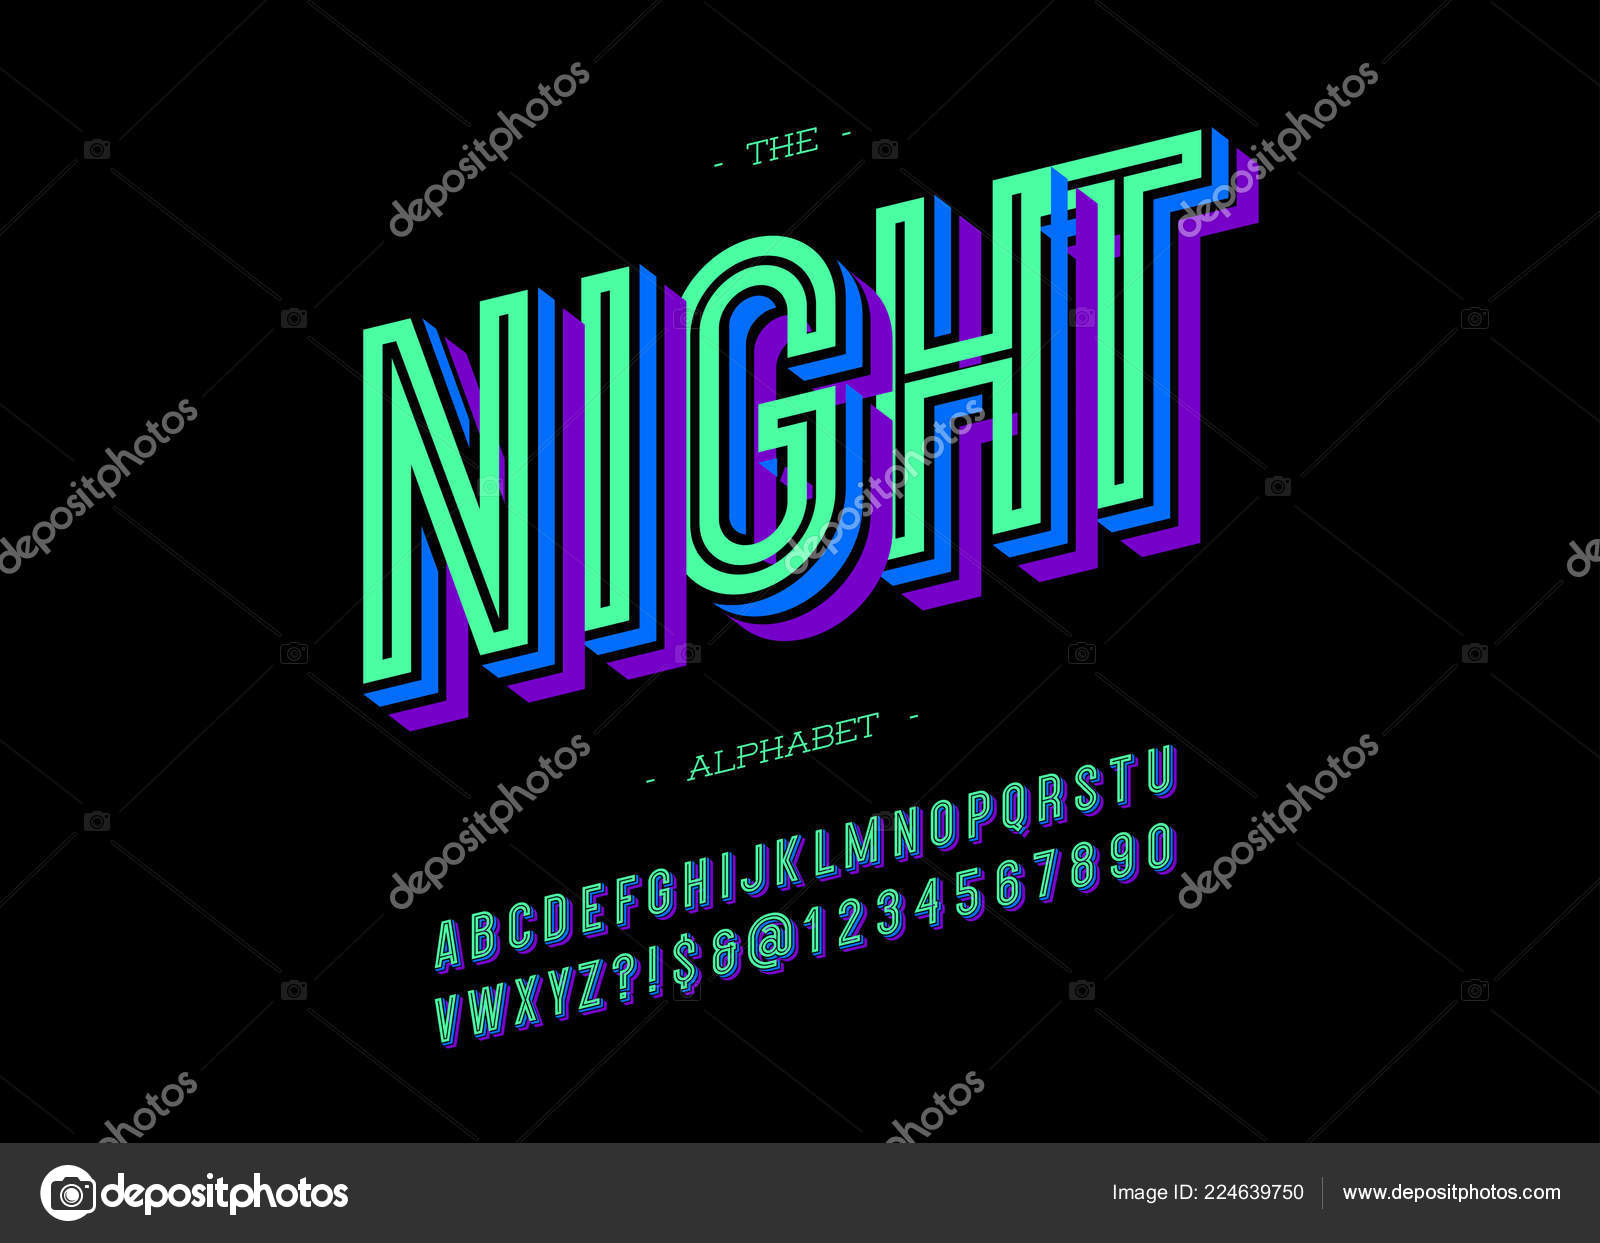 Tv show logo fonts | Vector bold night font trendy